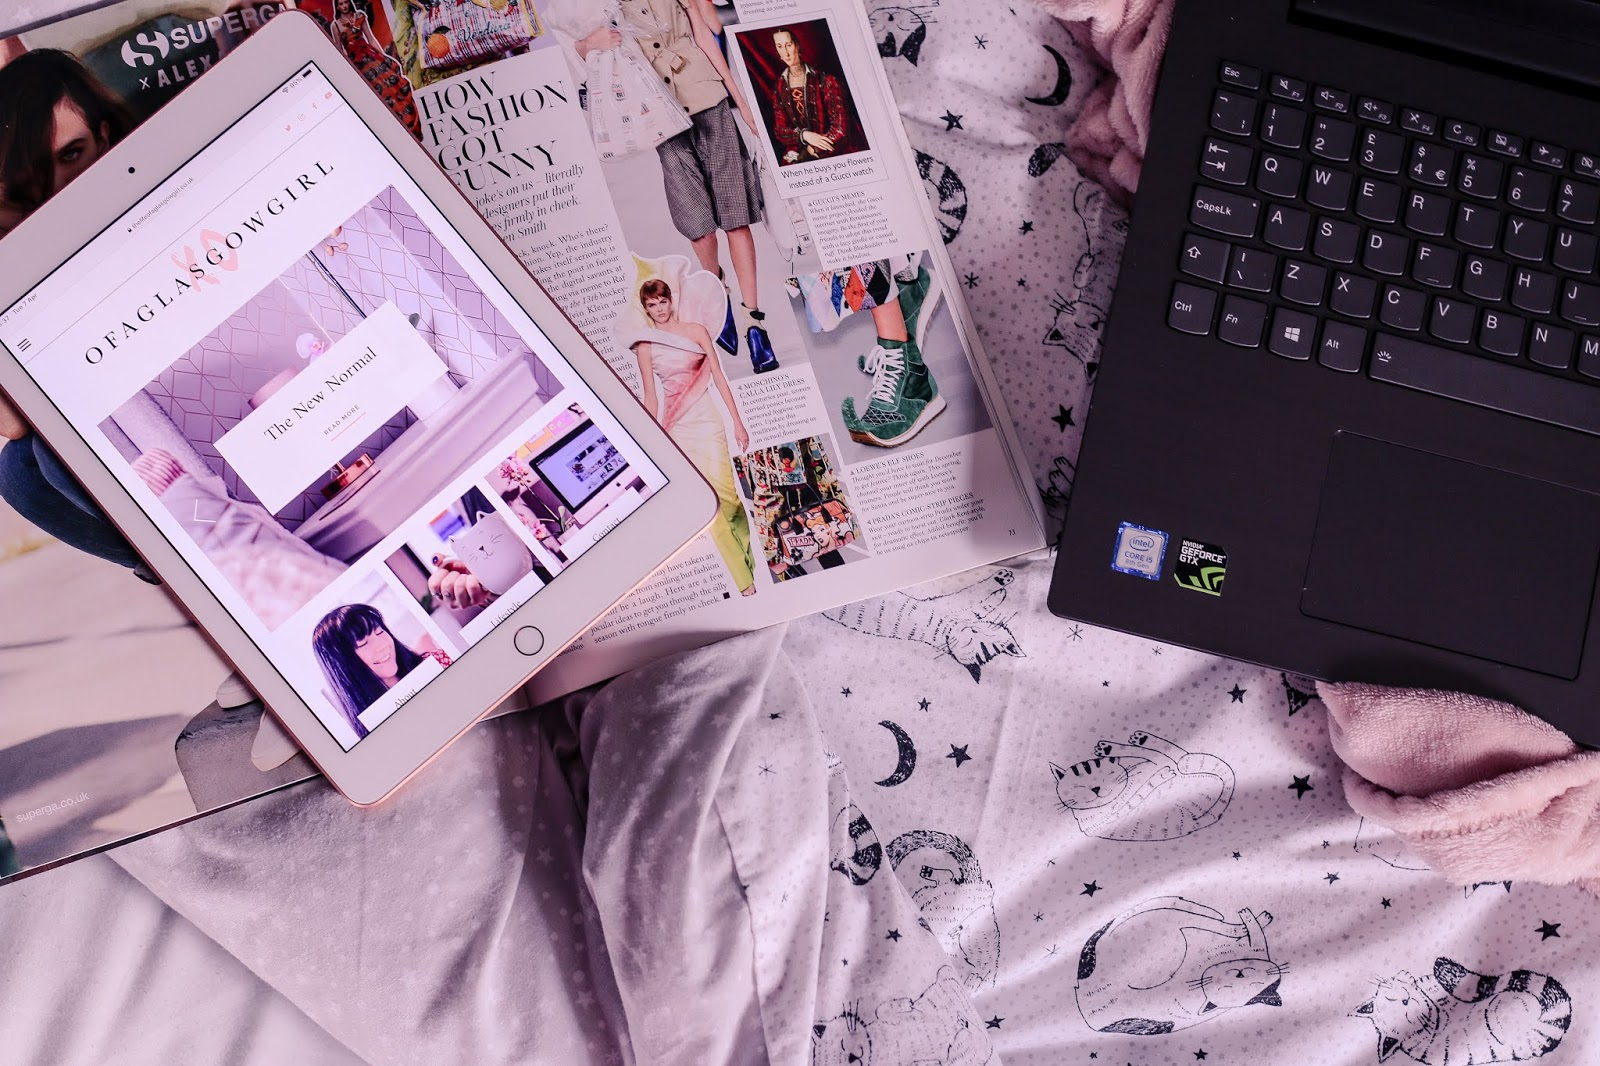 Birds eye view of a white iPad with a vogue magazine under it on top of a bed with a black laptop next to it.